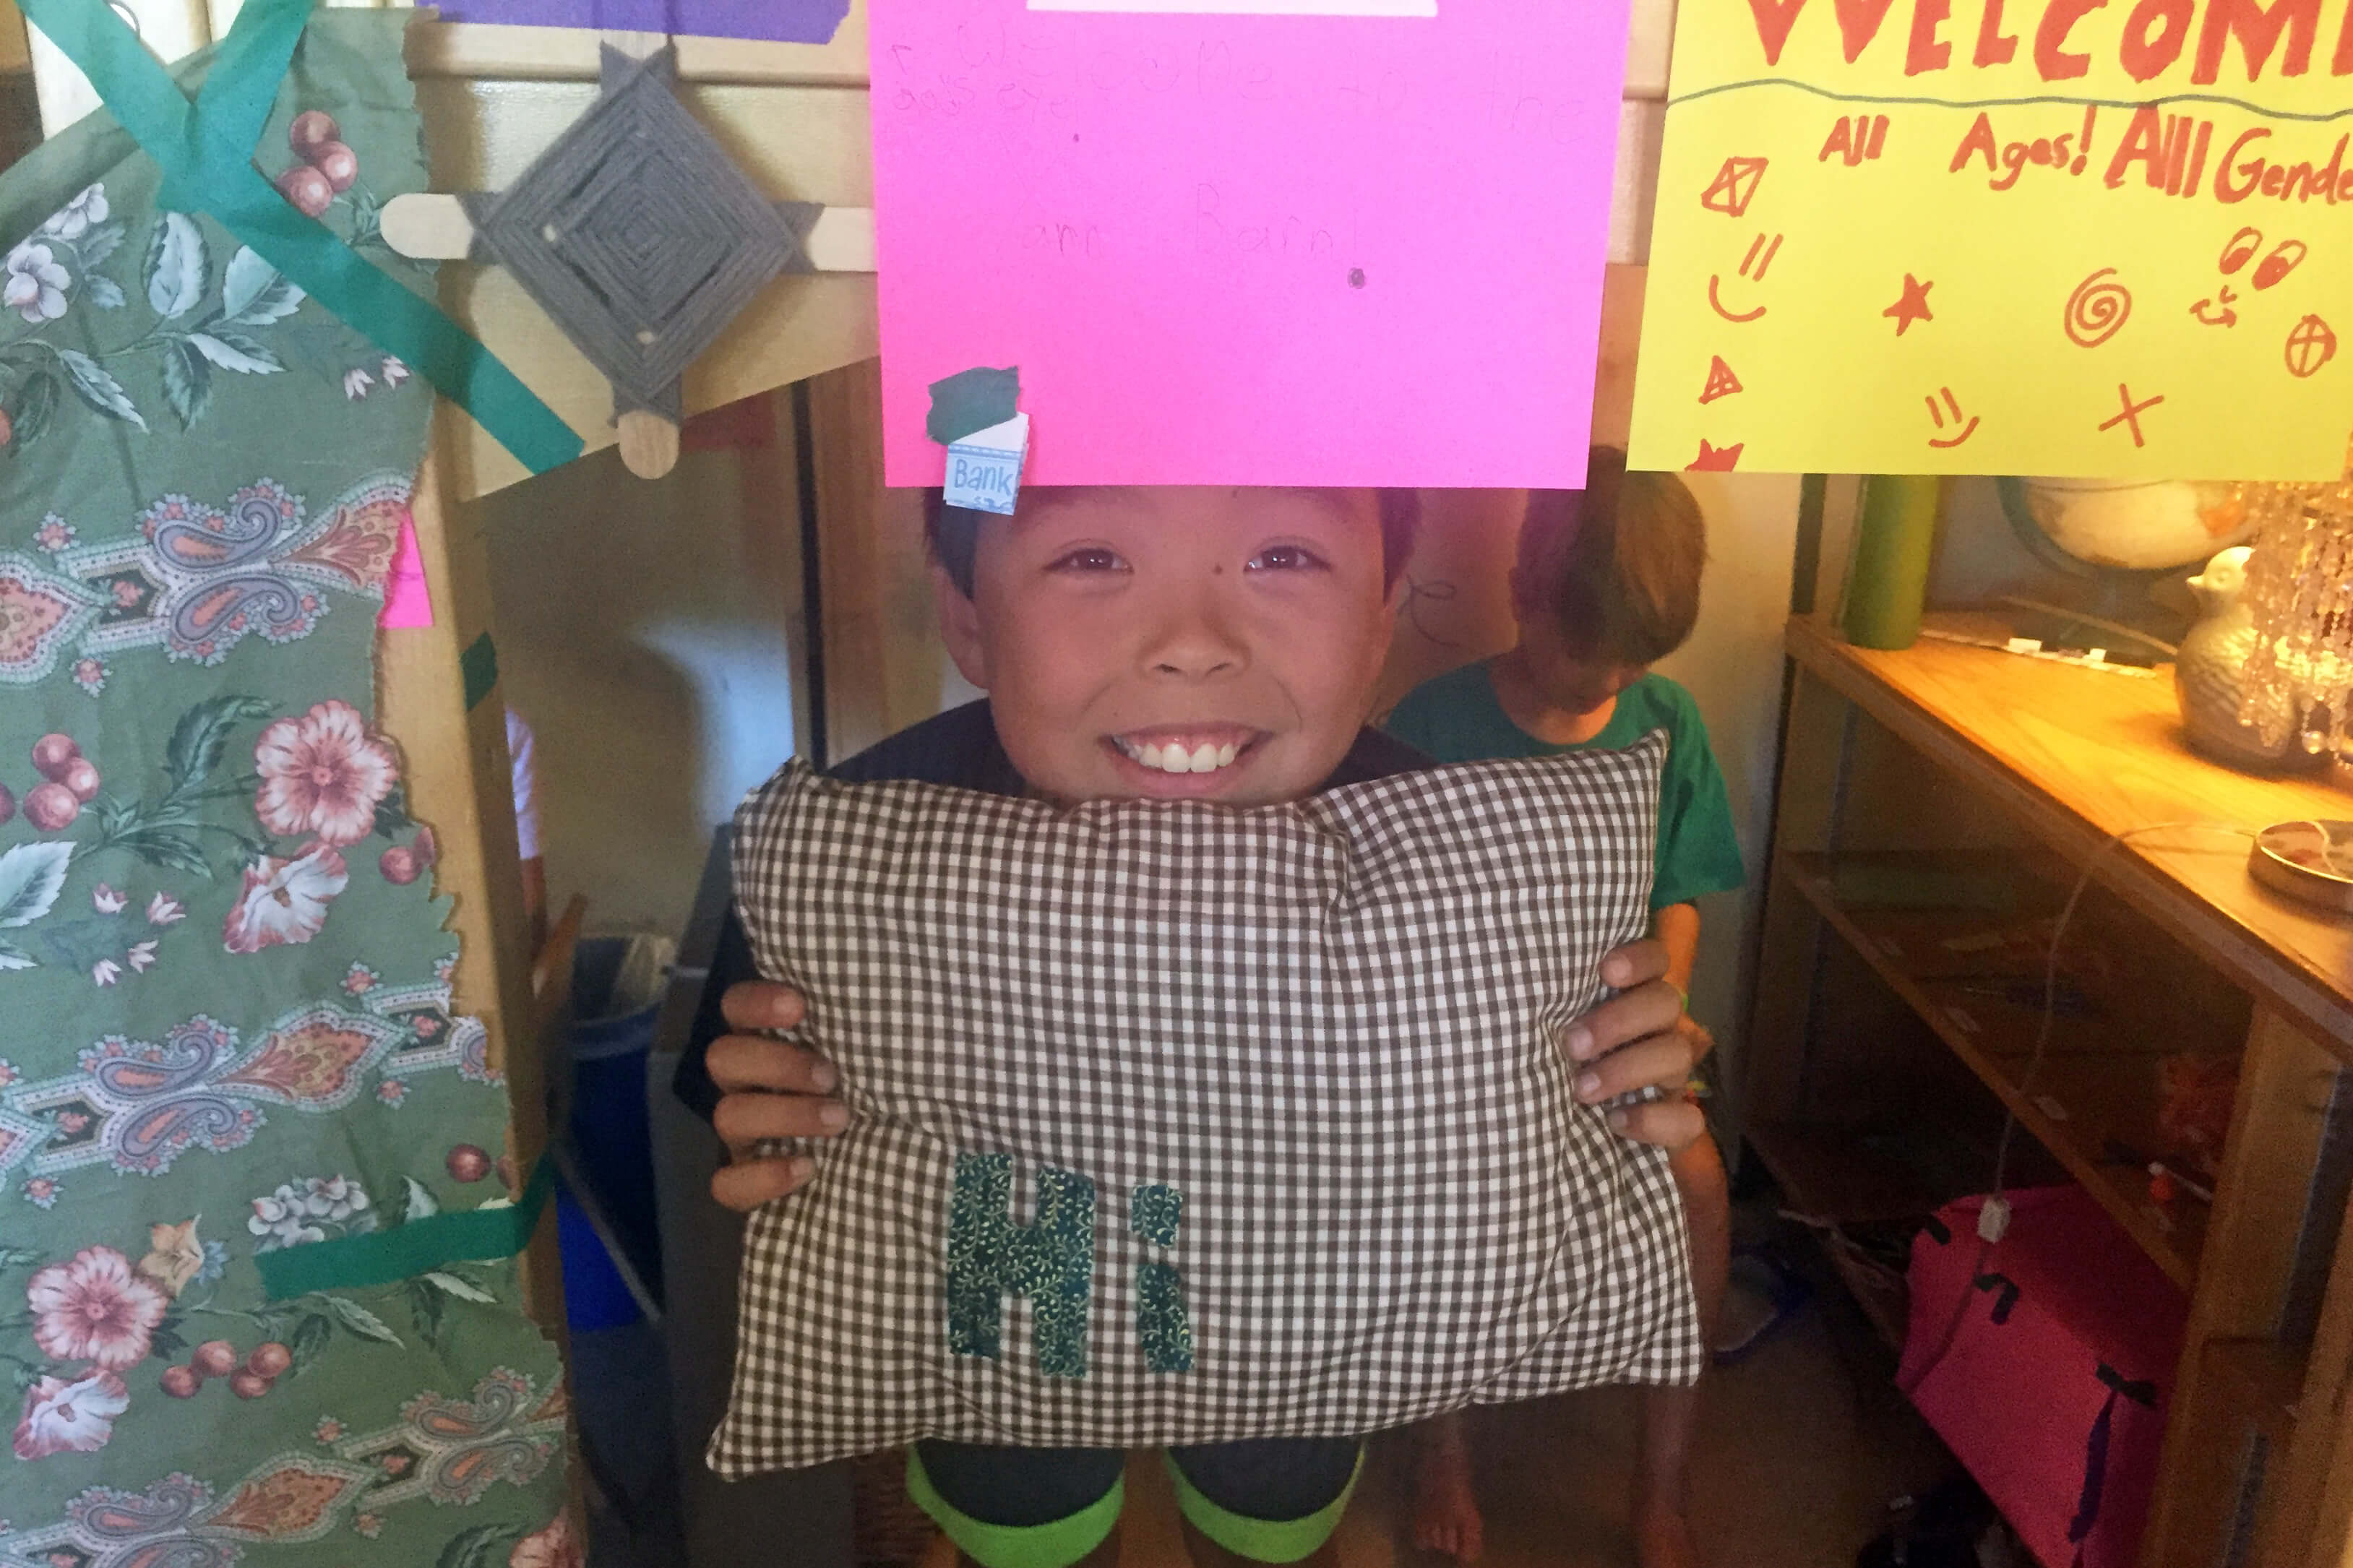 A young boy smiles while holding a pillow he created that says hi